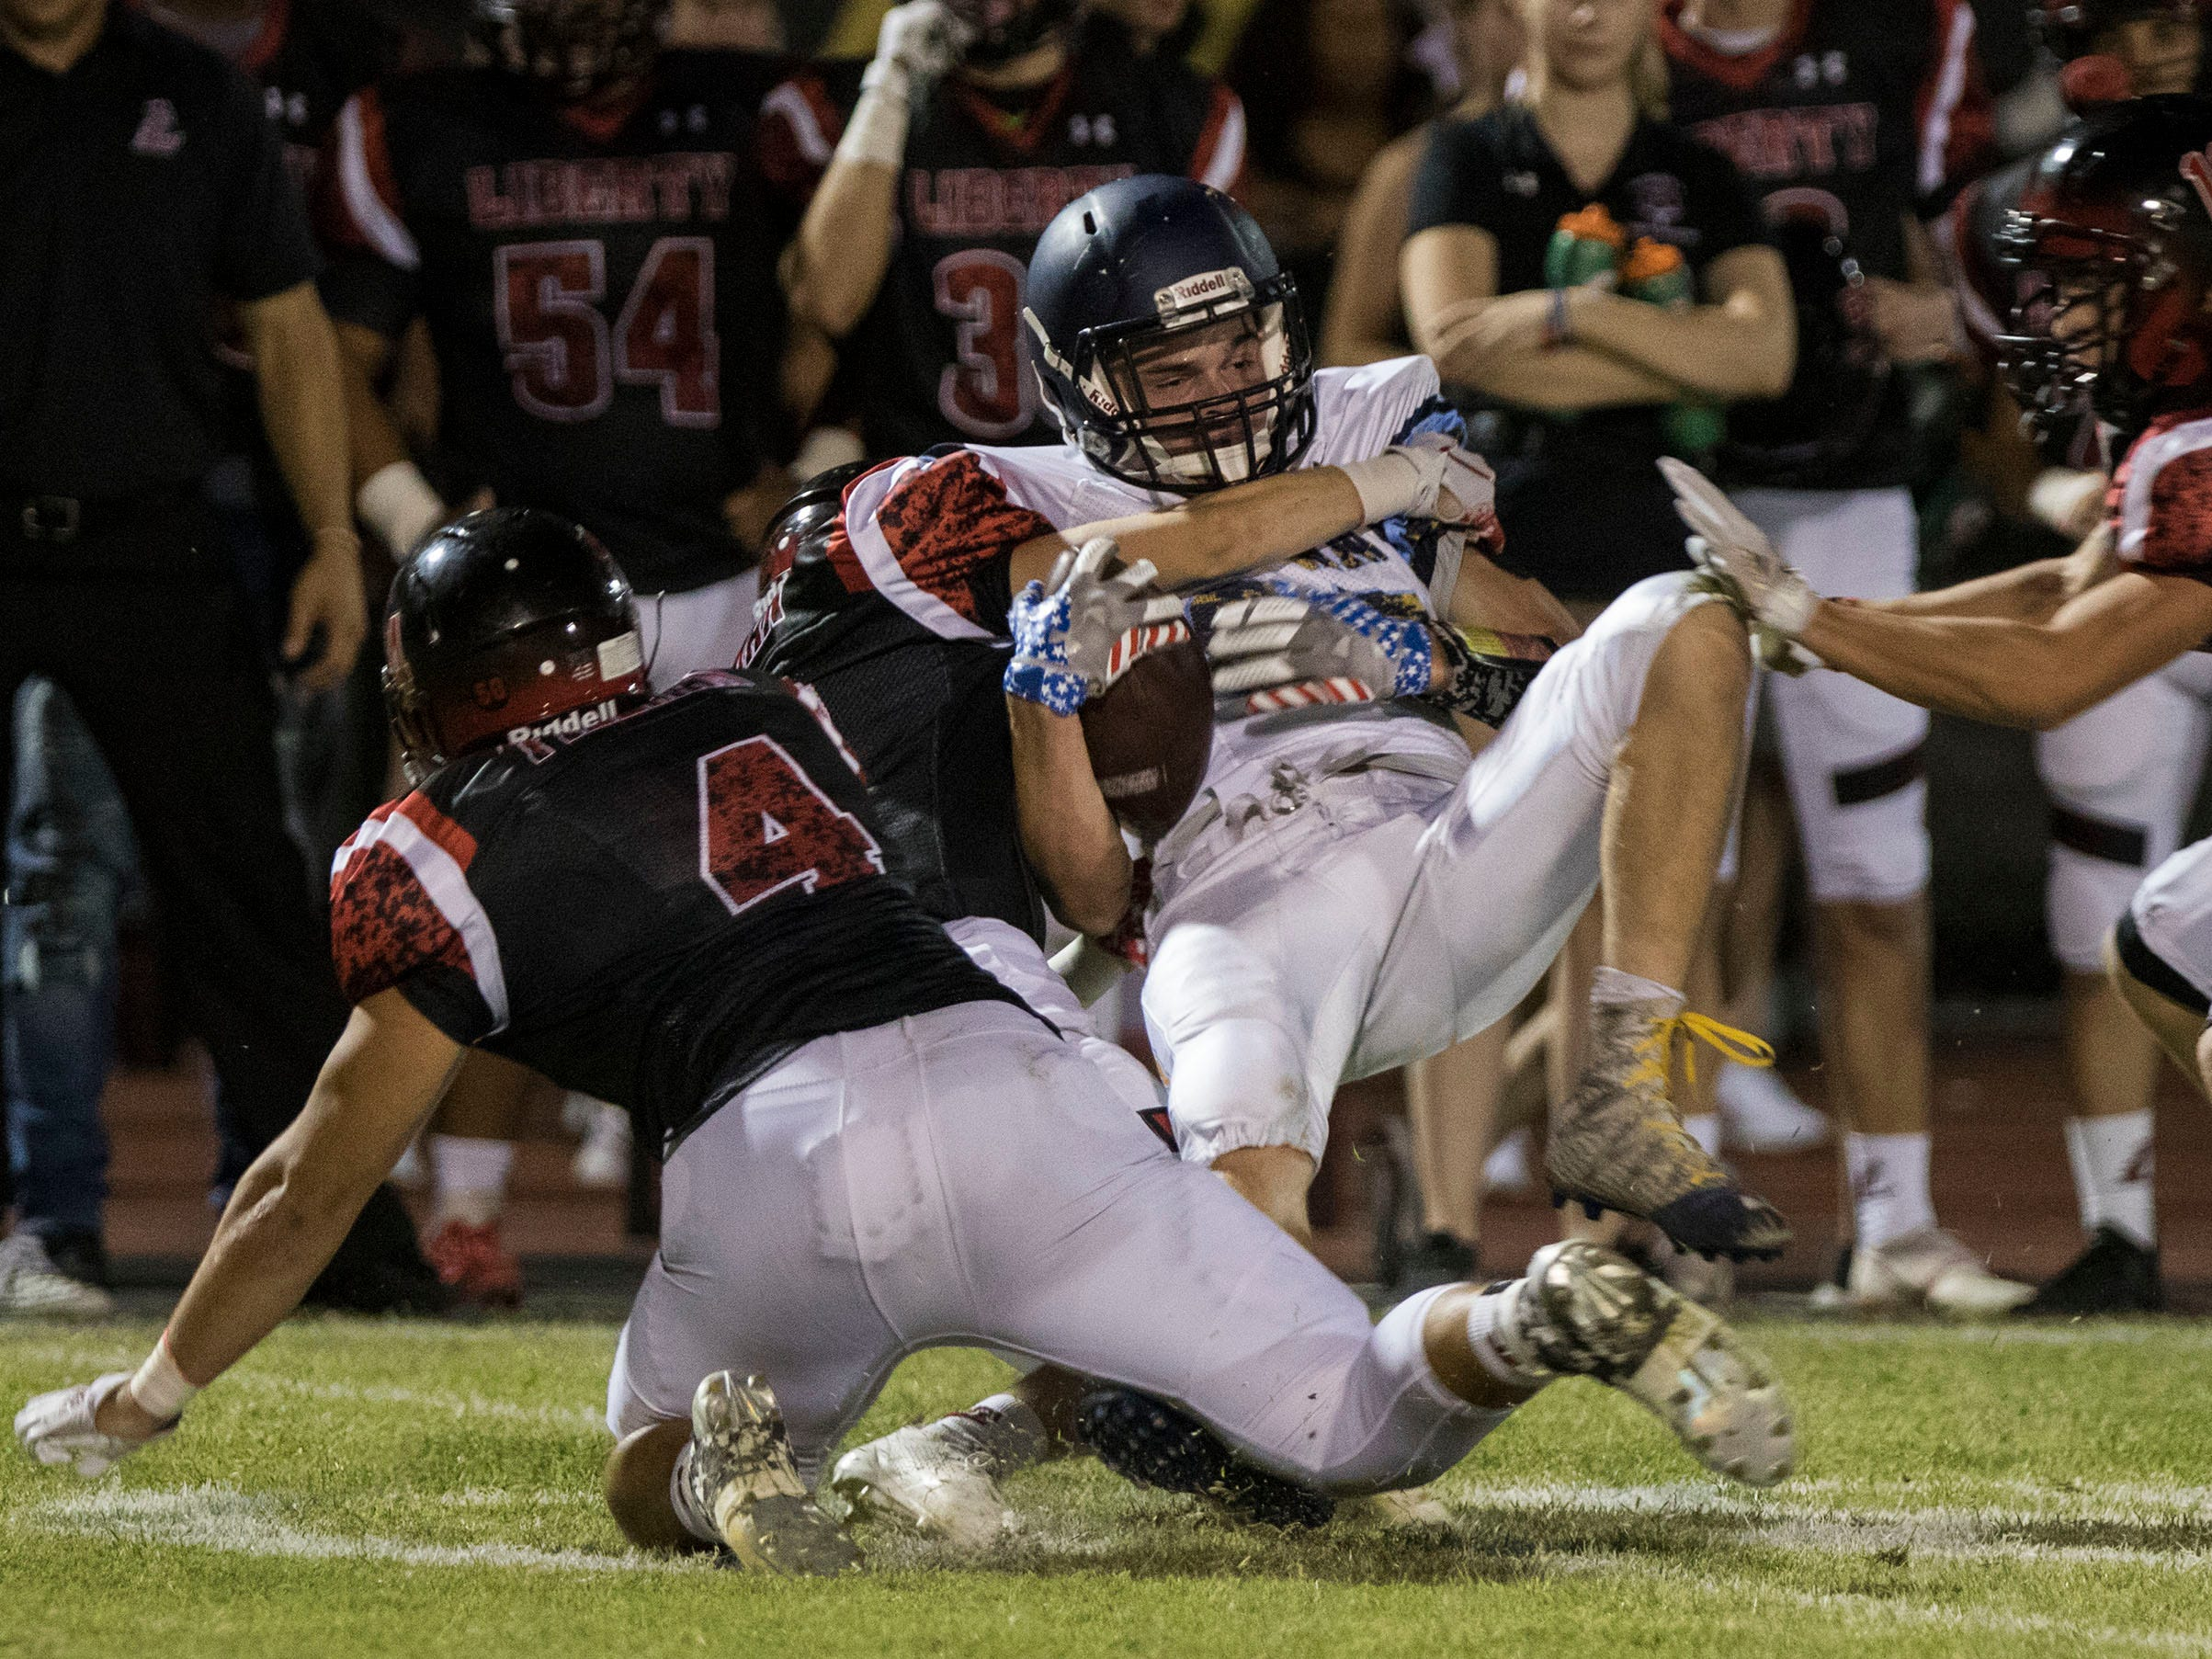 Leland's Preston Gook gets upended by Liberty's defense during their game in Peoria Friday, Sept.14, 2018. #azhsfb